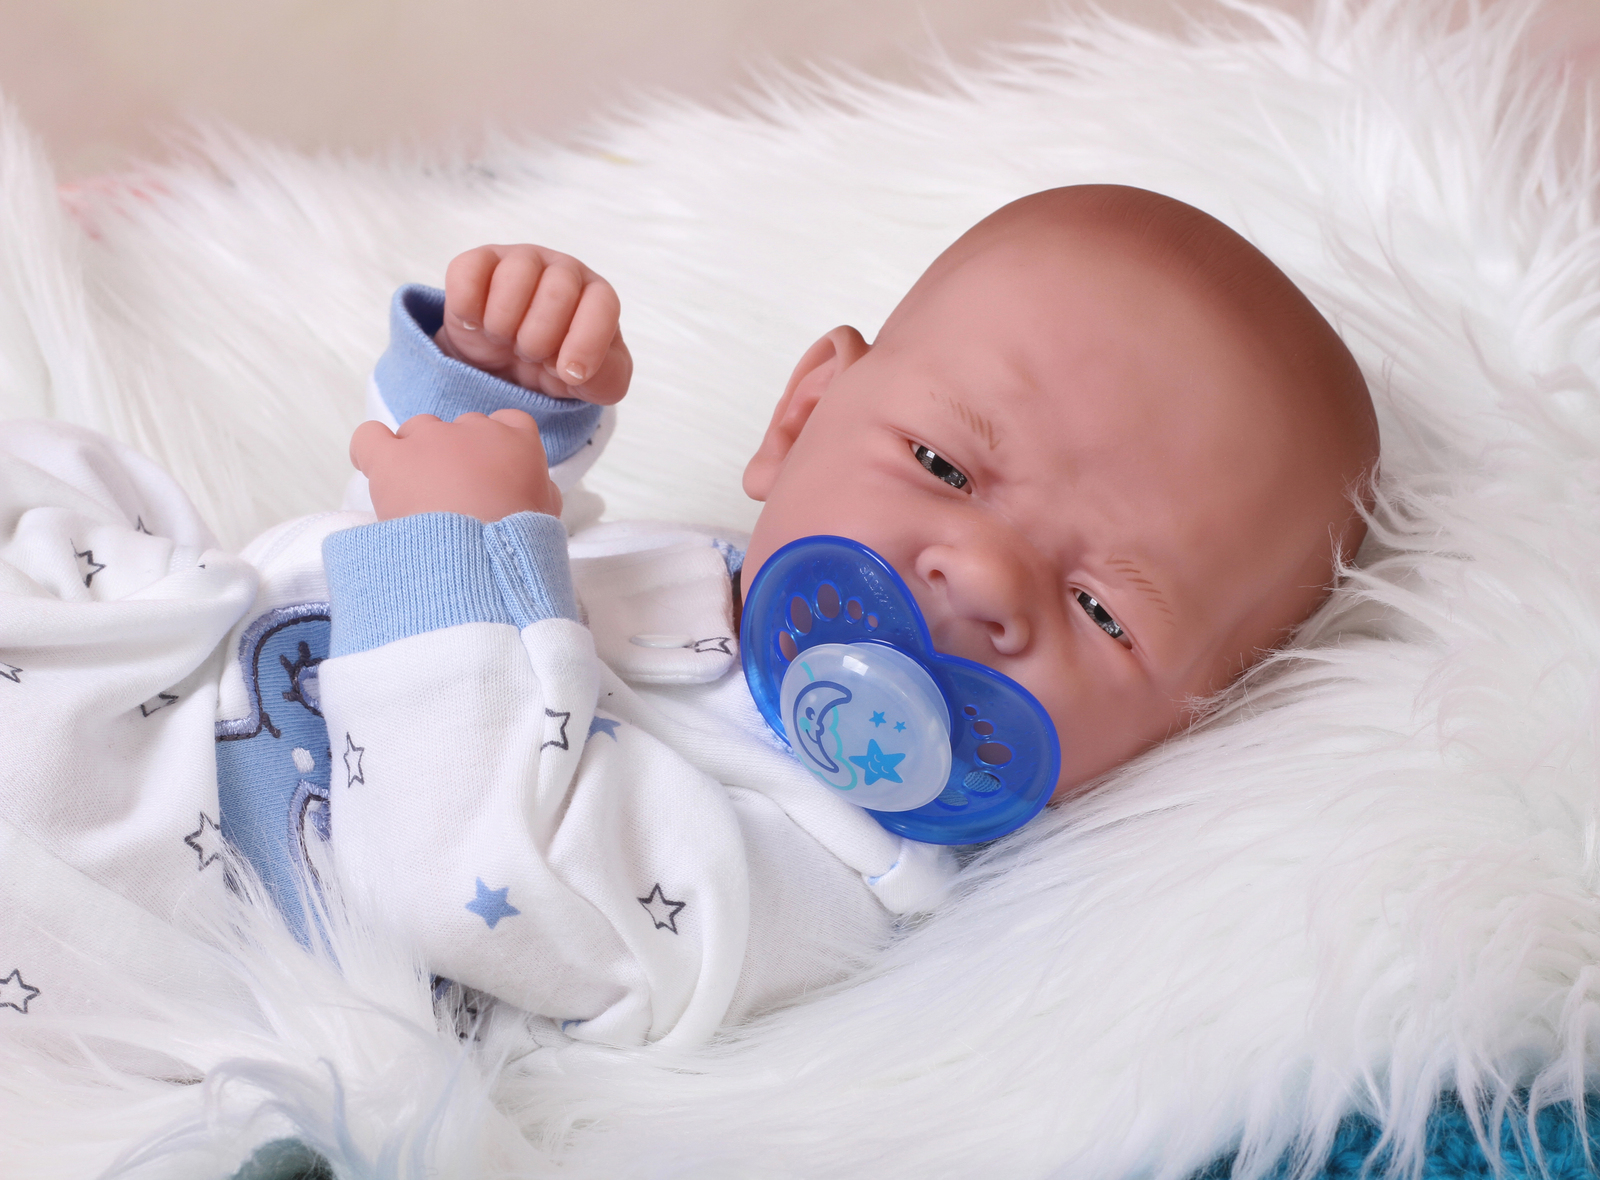 Baby Soft Vinyl Boy Doll Preemie Life Like Reborn Anatomically Alive Washable for sale  USA